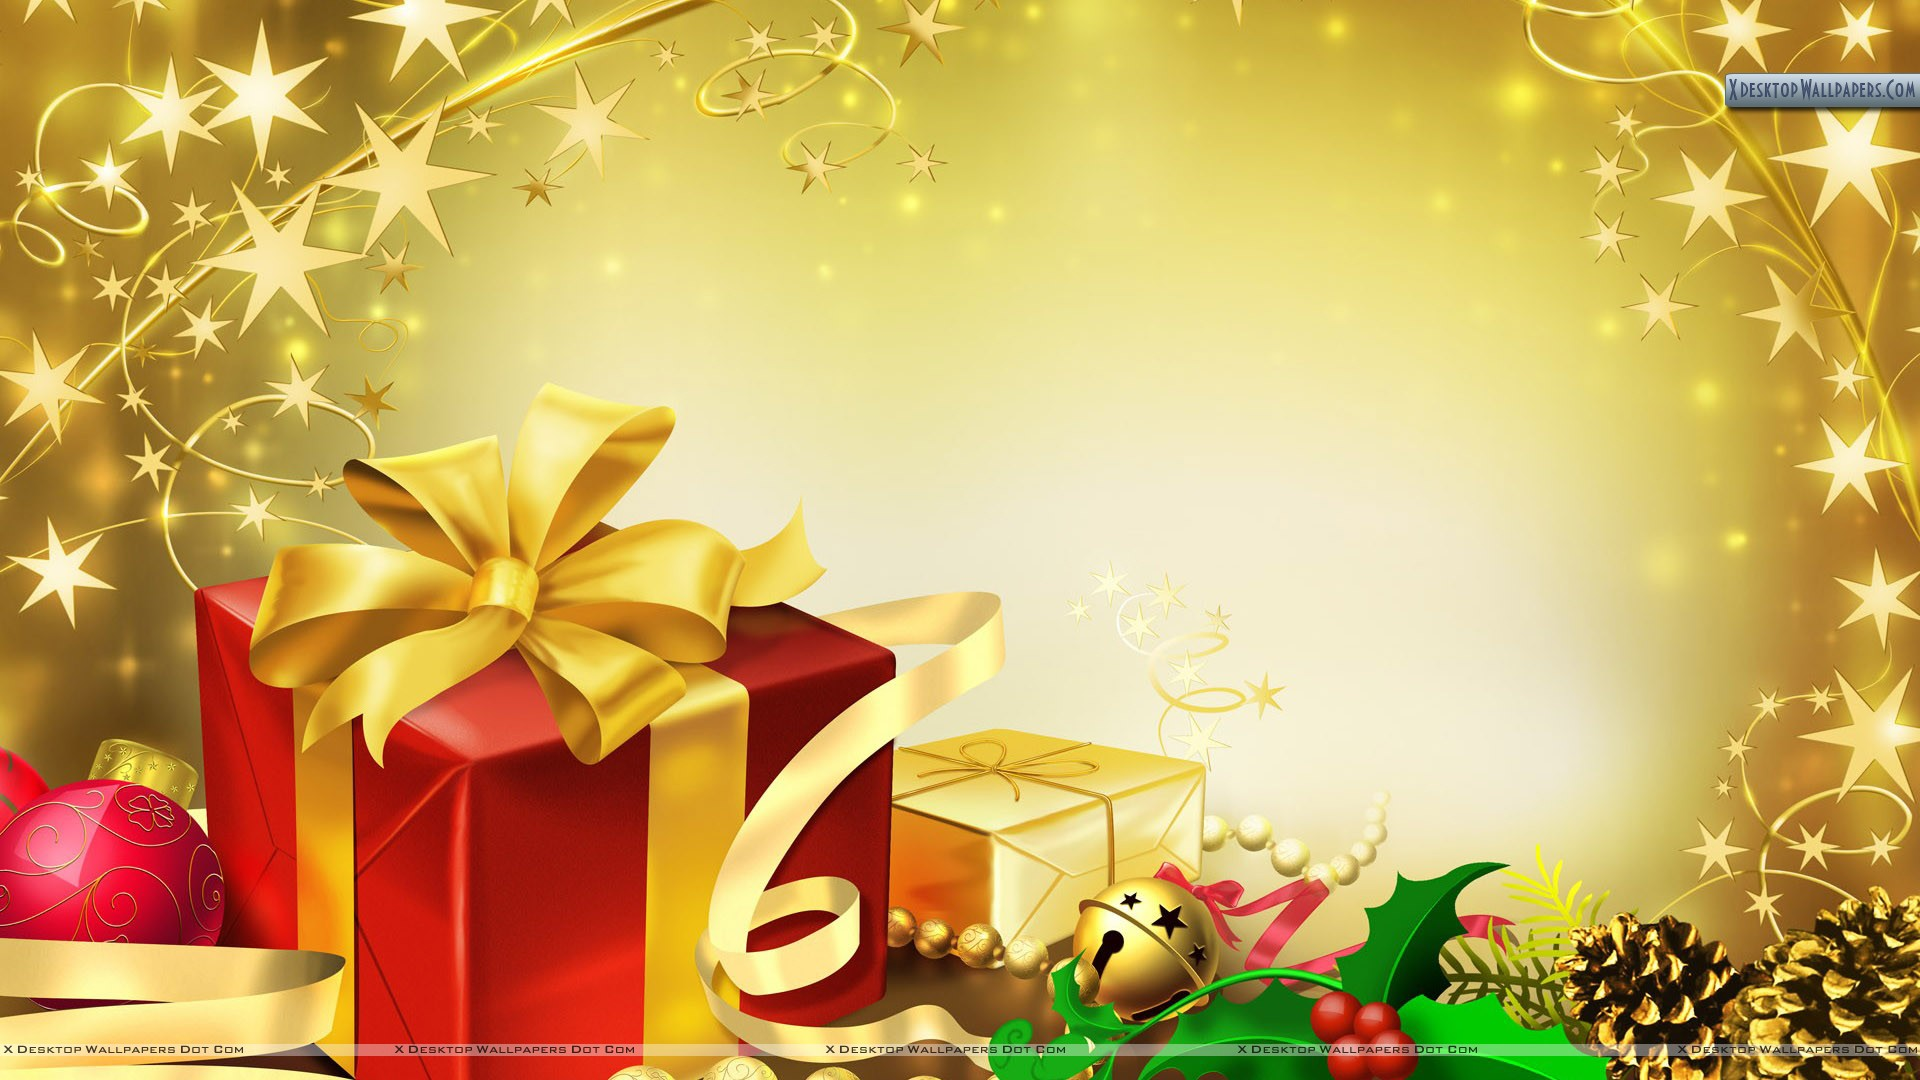 Gifts Packets At Christmas Eve Wallpaper